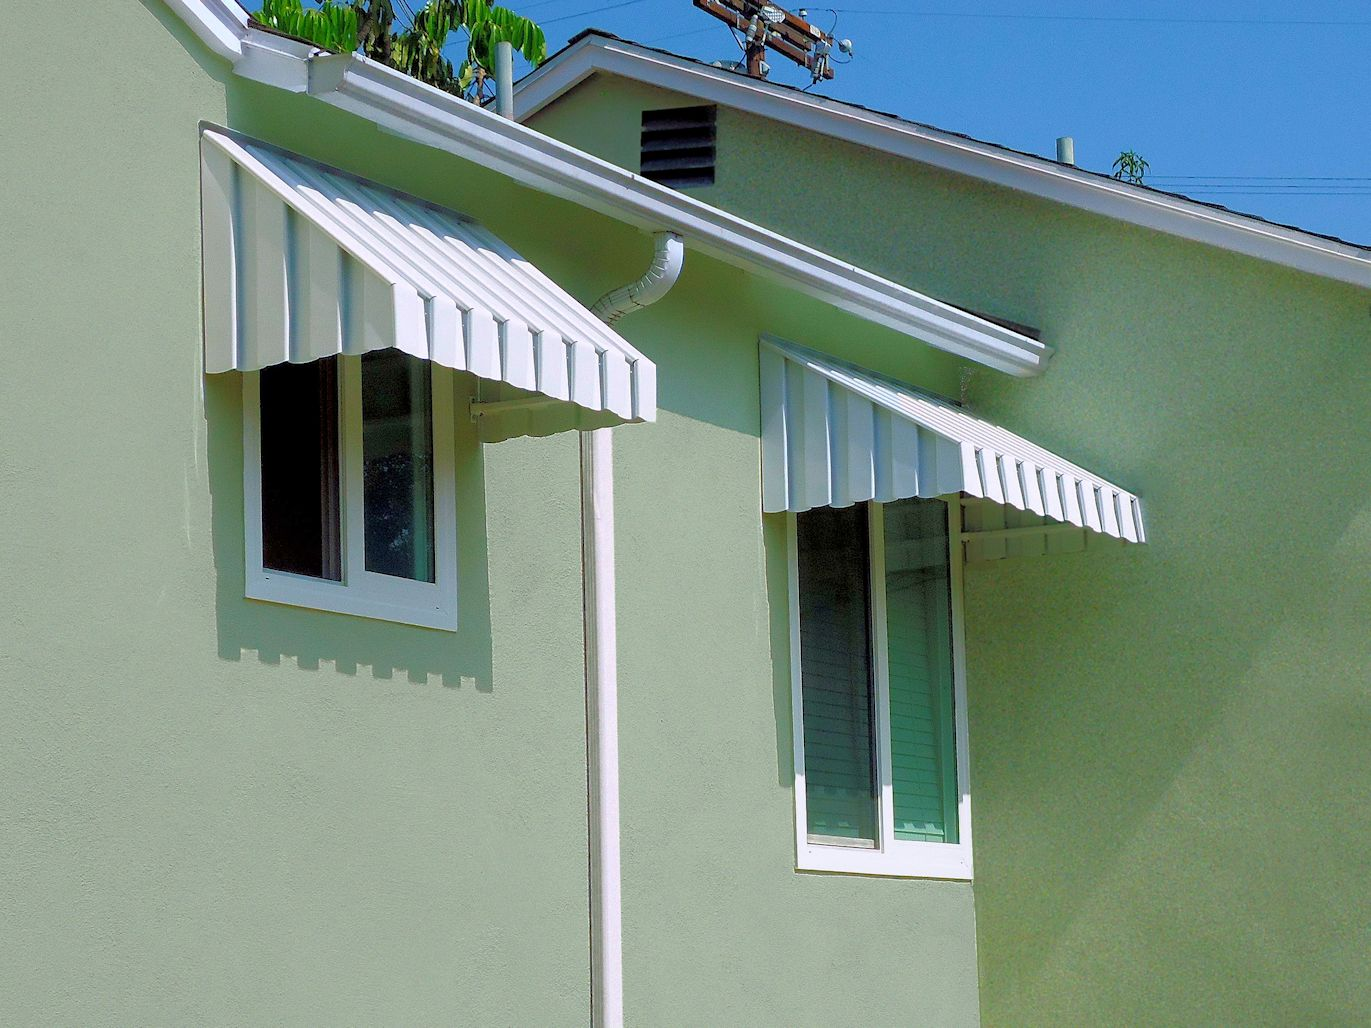 aluminum awnings RJEDRZK